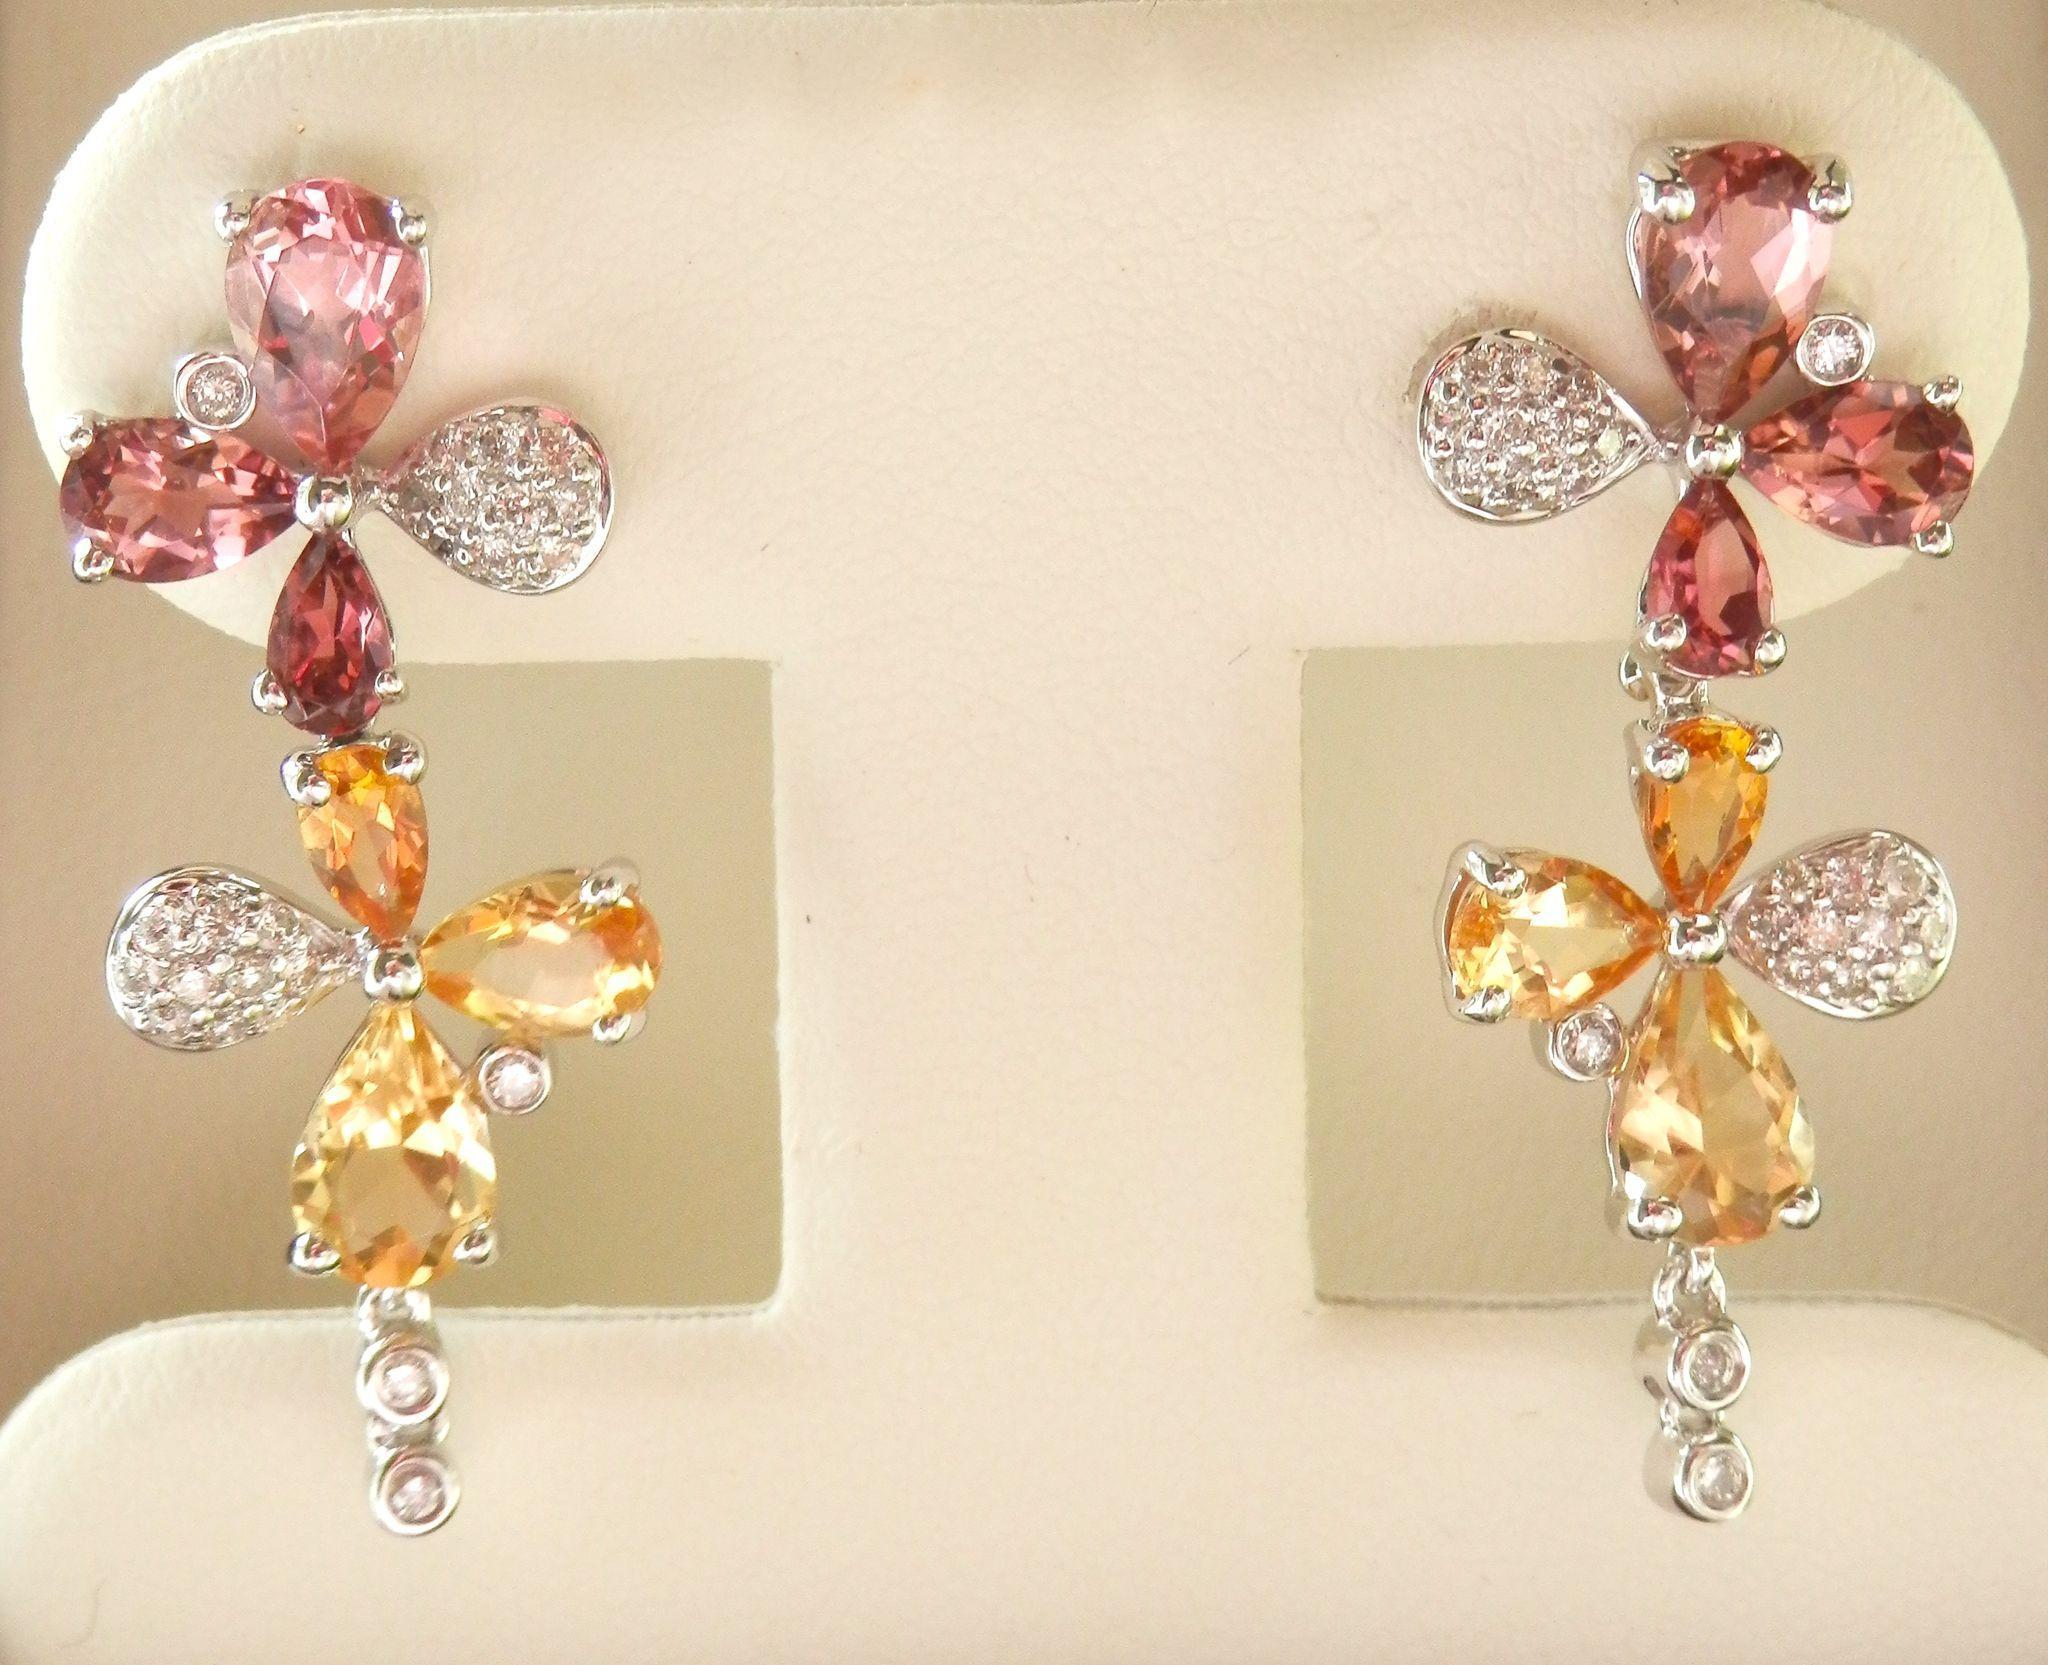 Exquisite 18K W/Gold Tourmaline, Citrine Diamond Drop Earrings